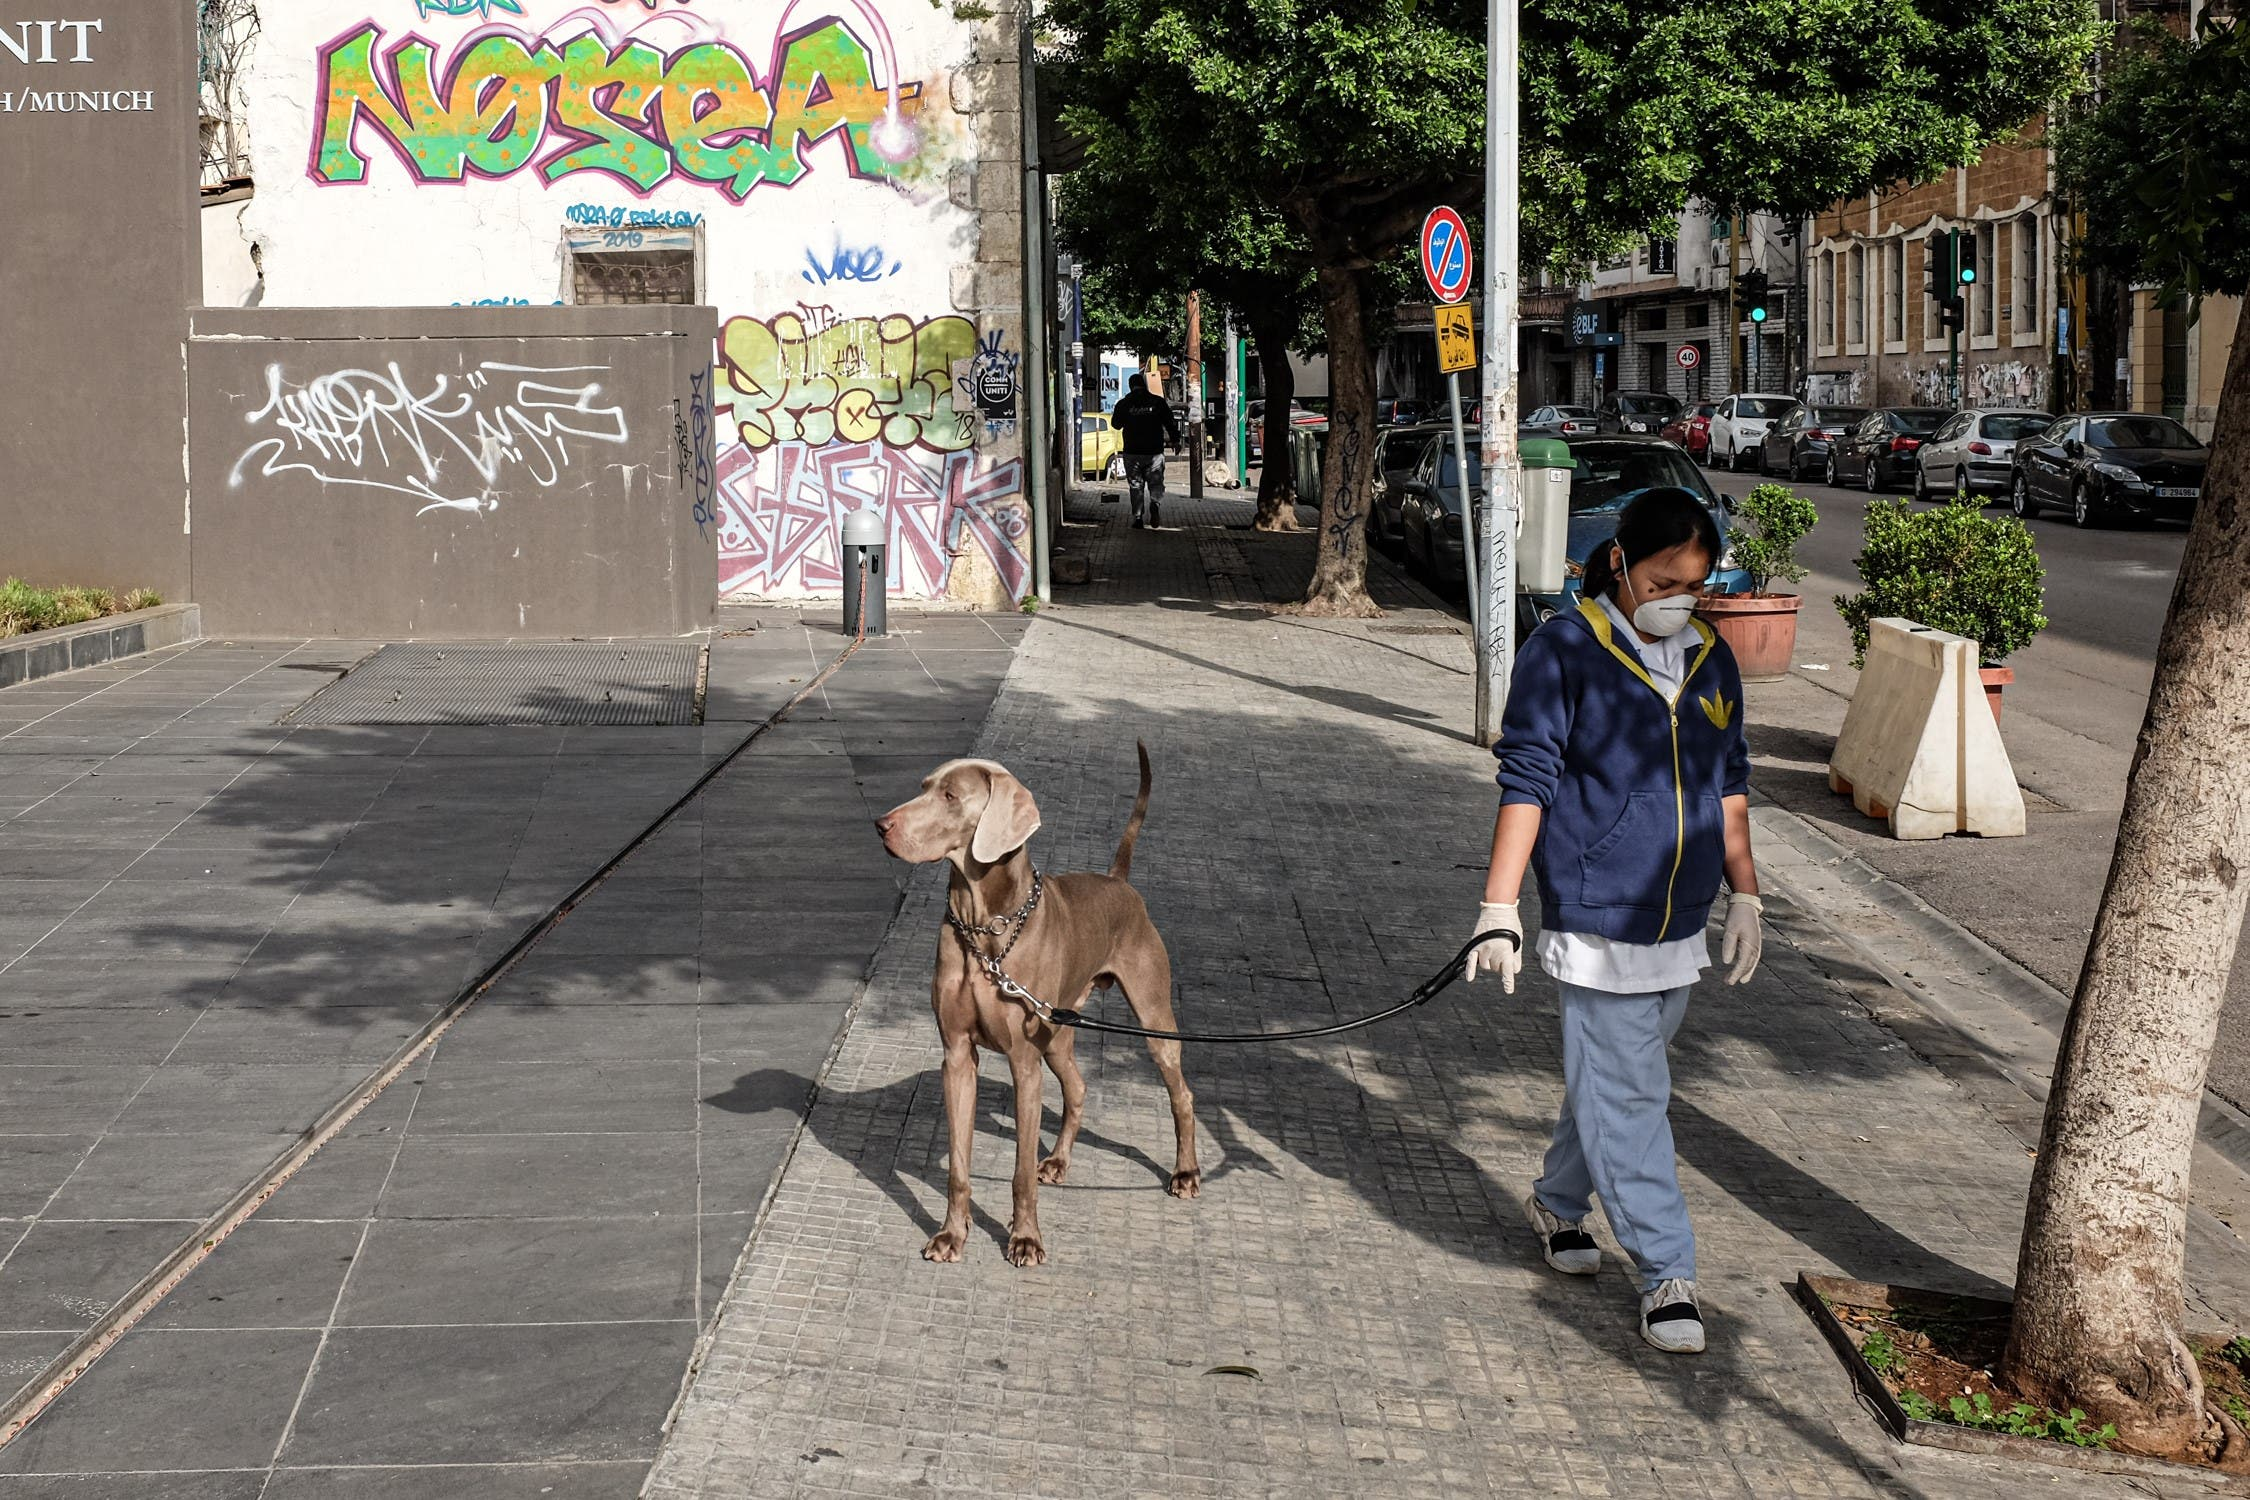 A masked domestic worker walks a dog along a quiet street in the Mar Mikhael district of Beirut. (Finbar Anderson)